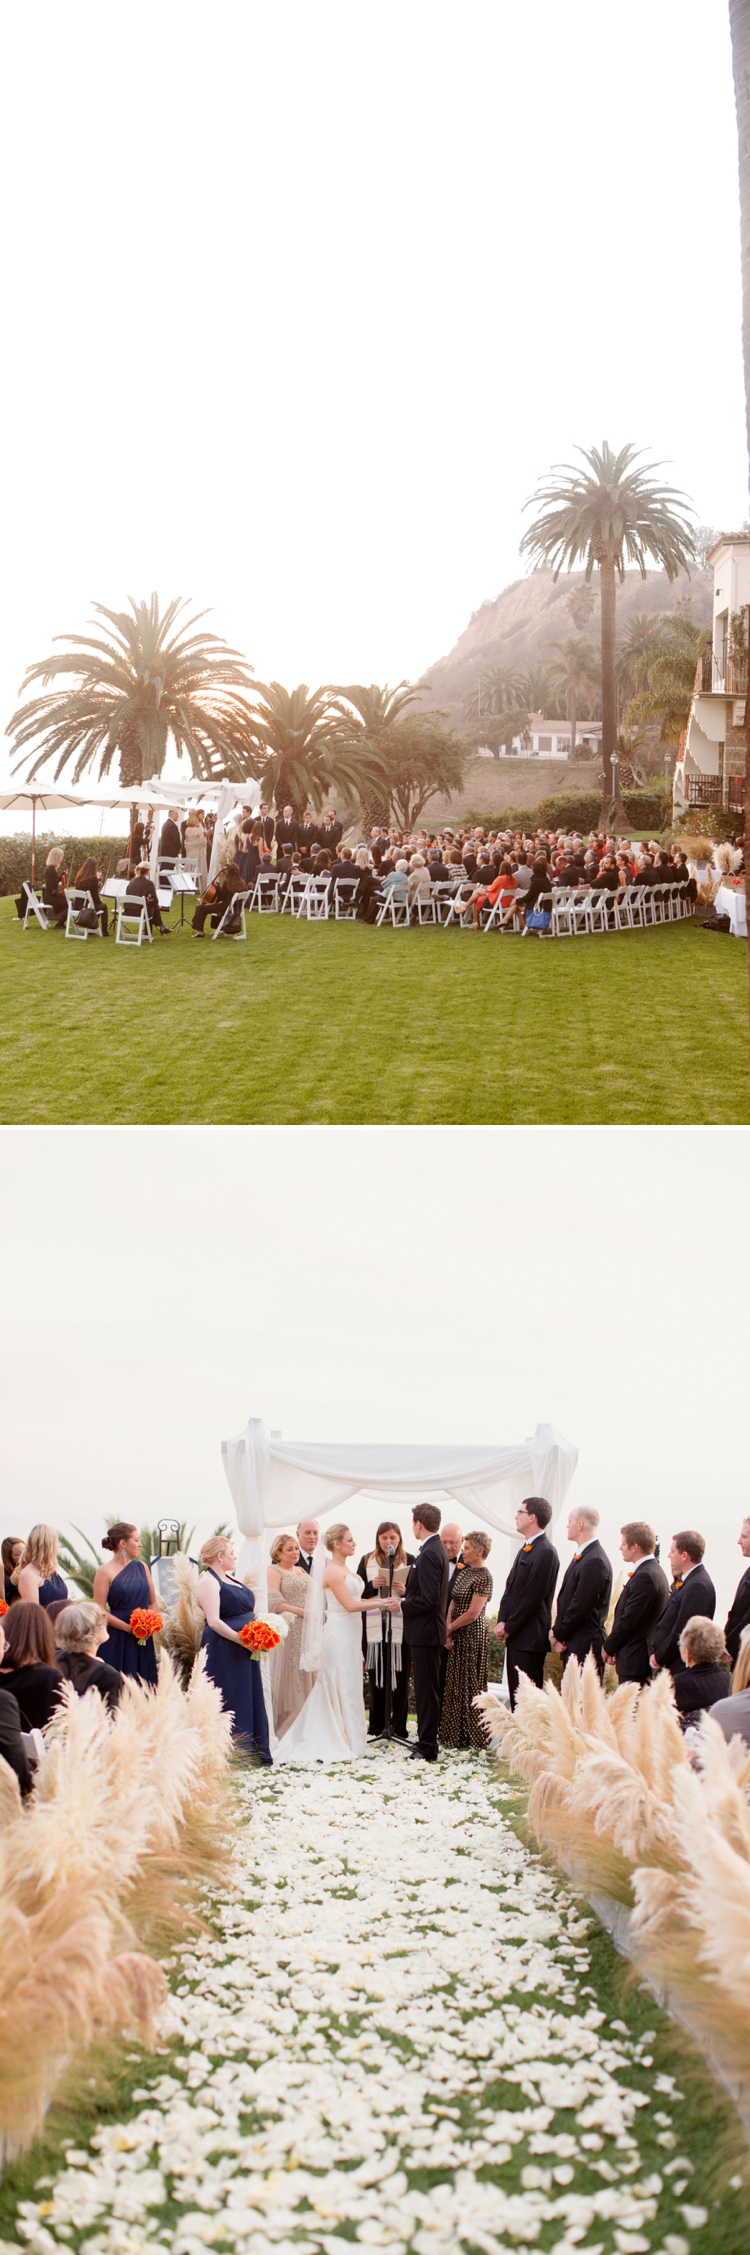 Outdoor Jewish Wedding at Bel Air Bay Club, California_0015